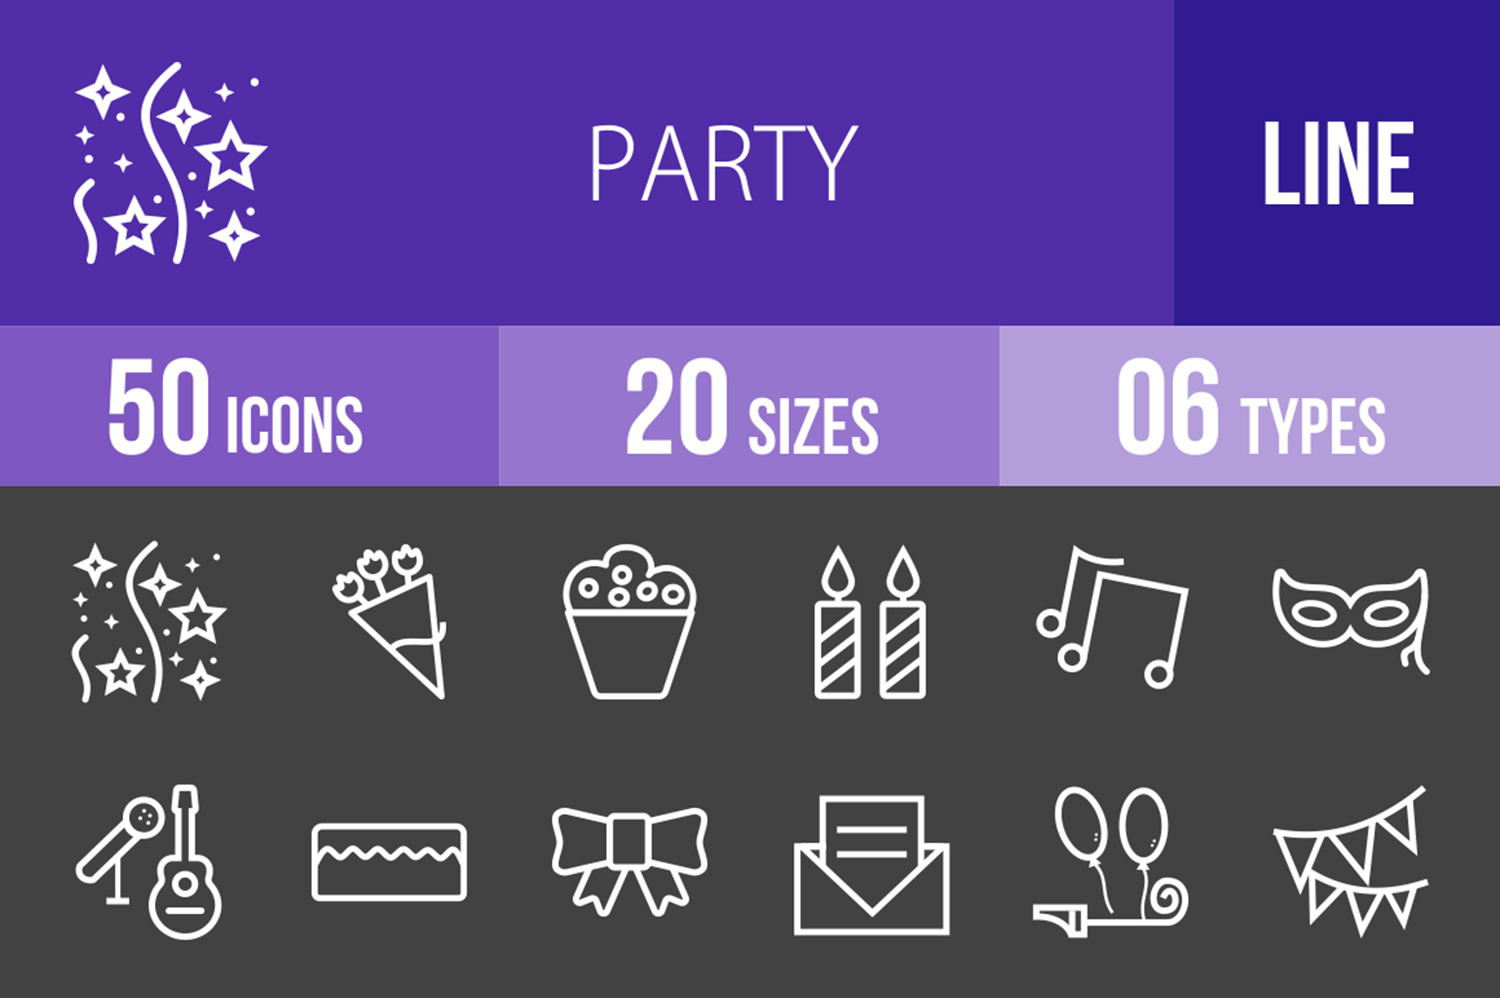 50 Party Line Inverted Icons example image 1